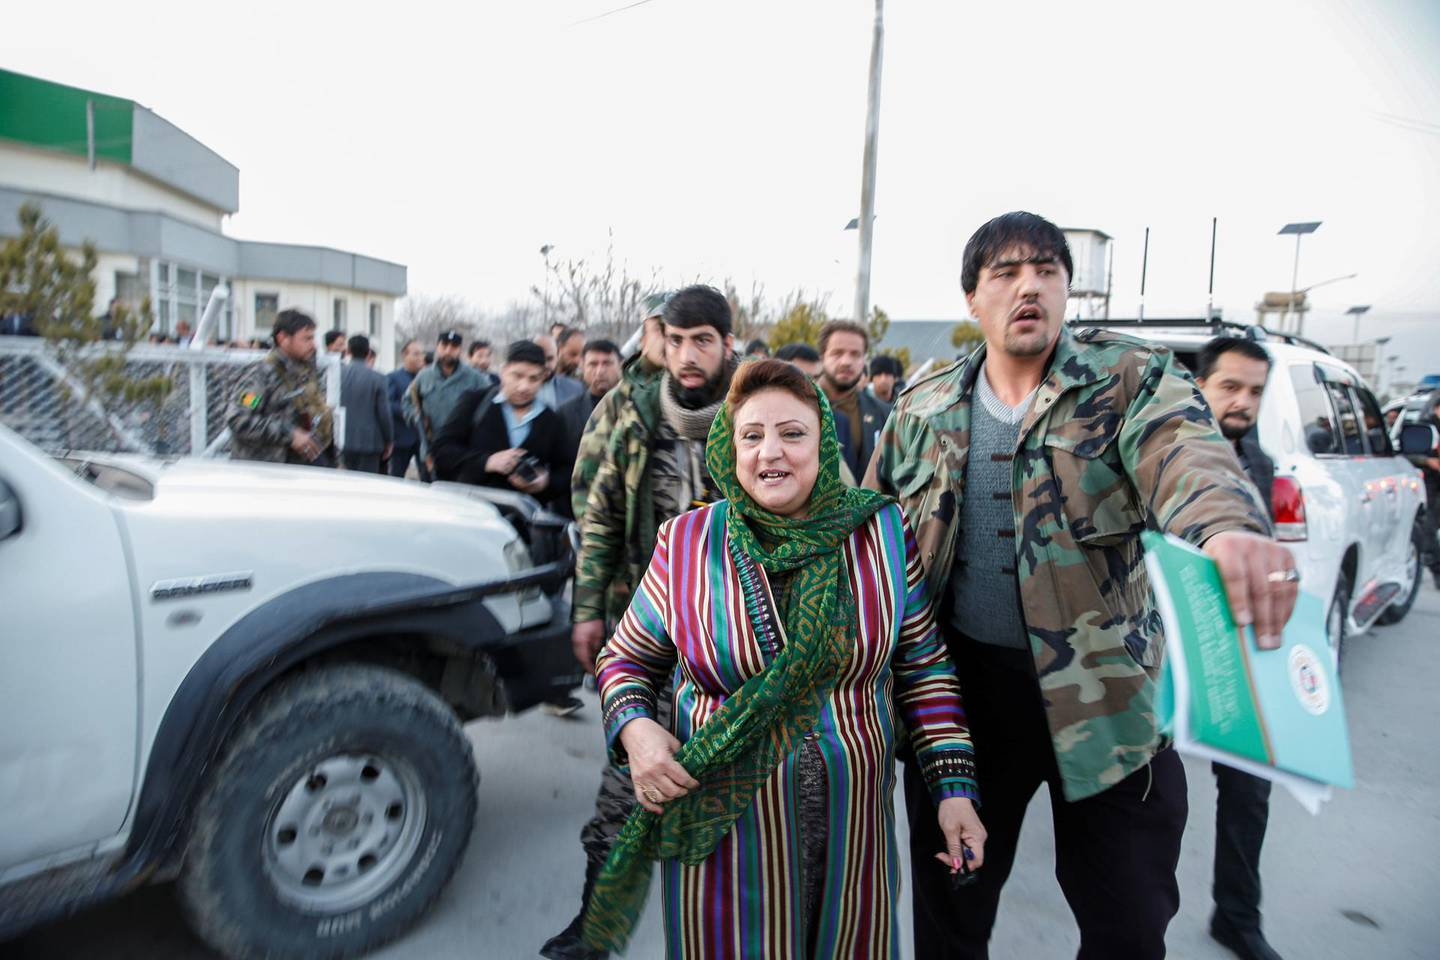 Hawa Alam Nuristani, head of the Independent Election Commission of Afghanistan (IEC) arrives for the final presidential election results announcement in Kabul, Afghanistan February 18, 2020 REUTERS/Mohammad Ismail